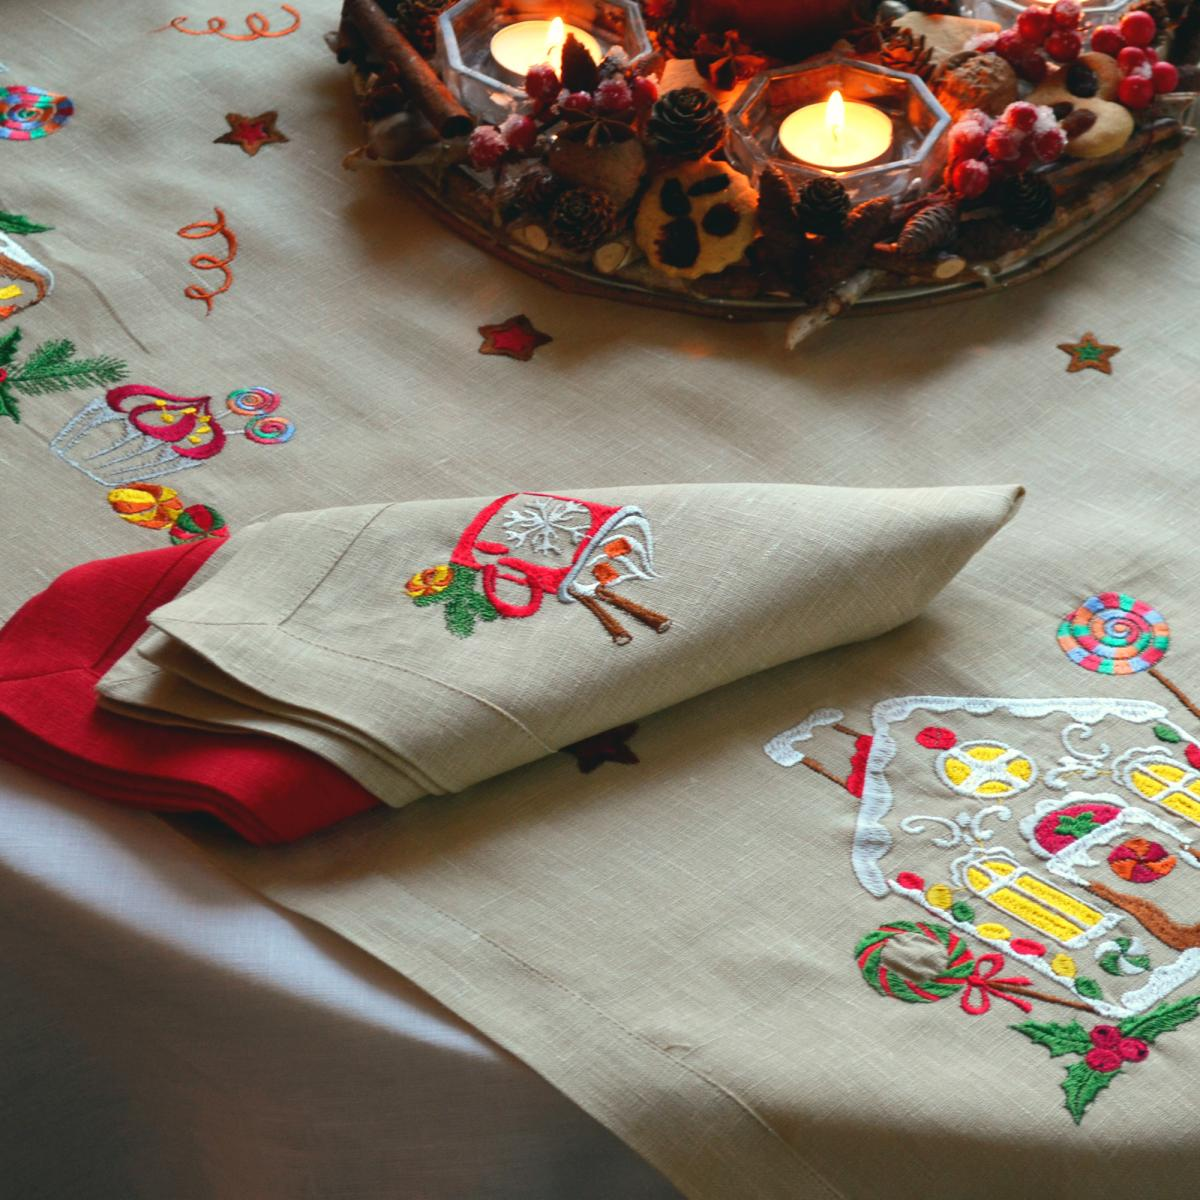 Napkin for the table